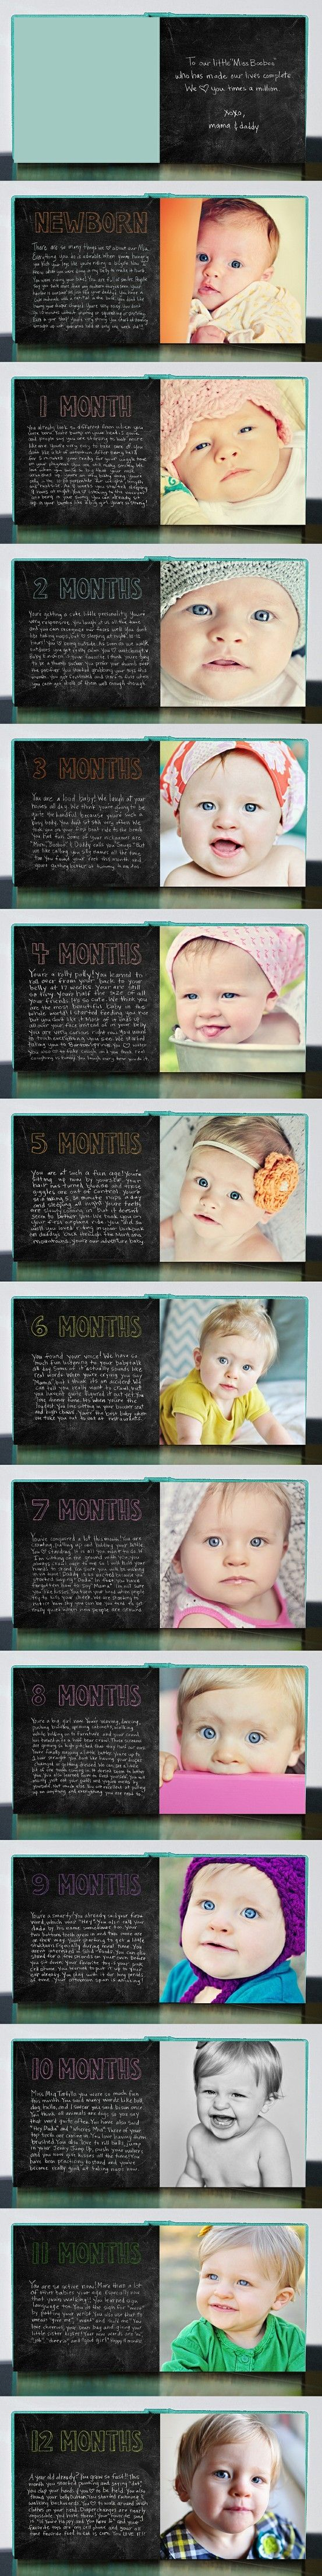 Month by month baby book. With baby girl's first birthday coming up I've been trying to decide what to do for a baby book. Love this idea.